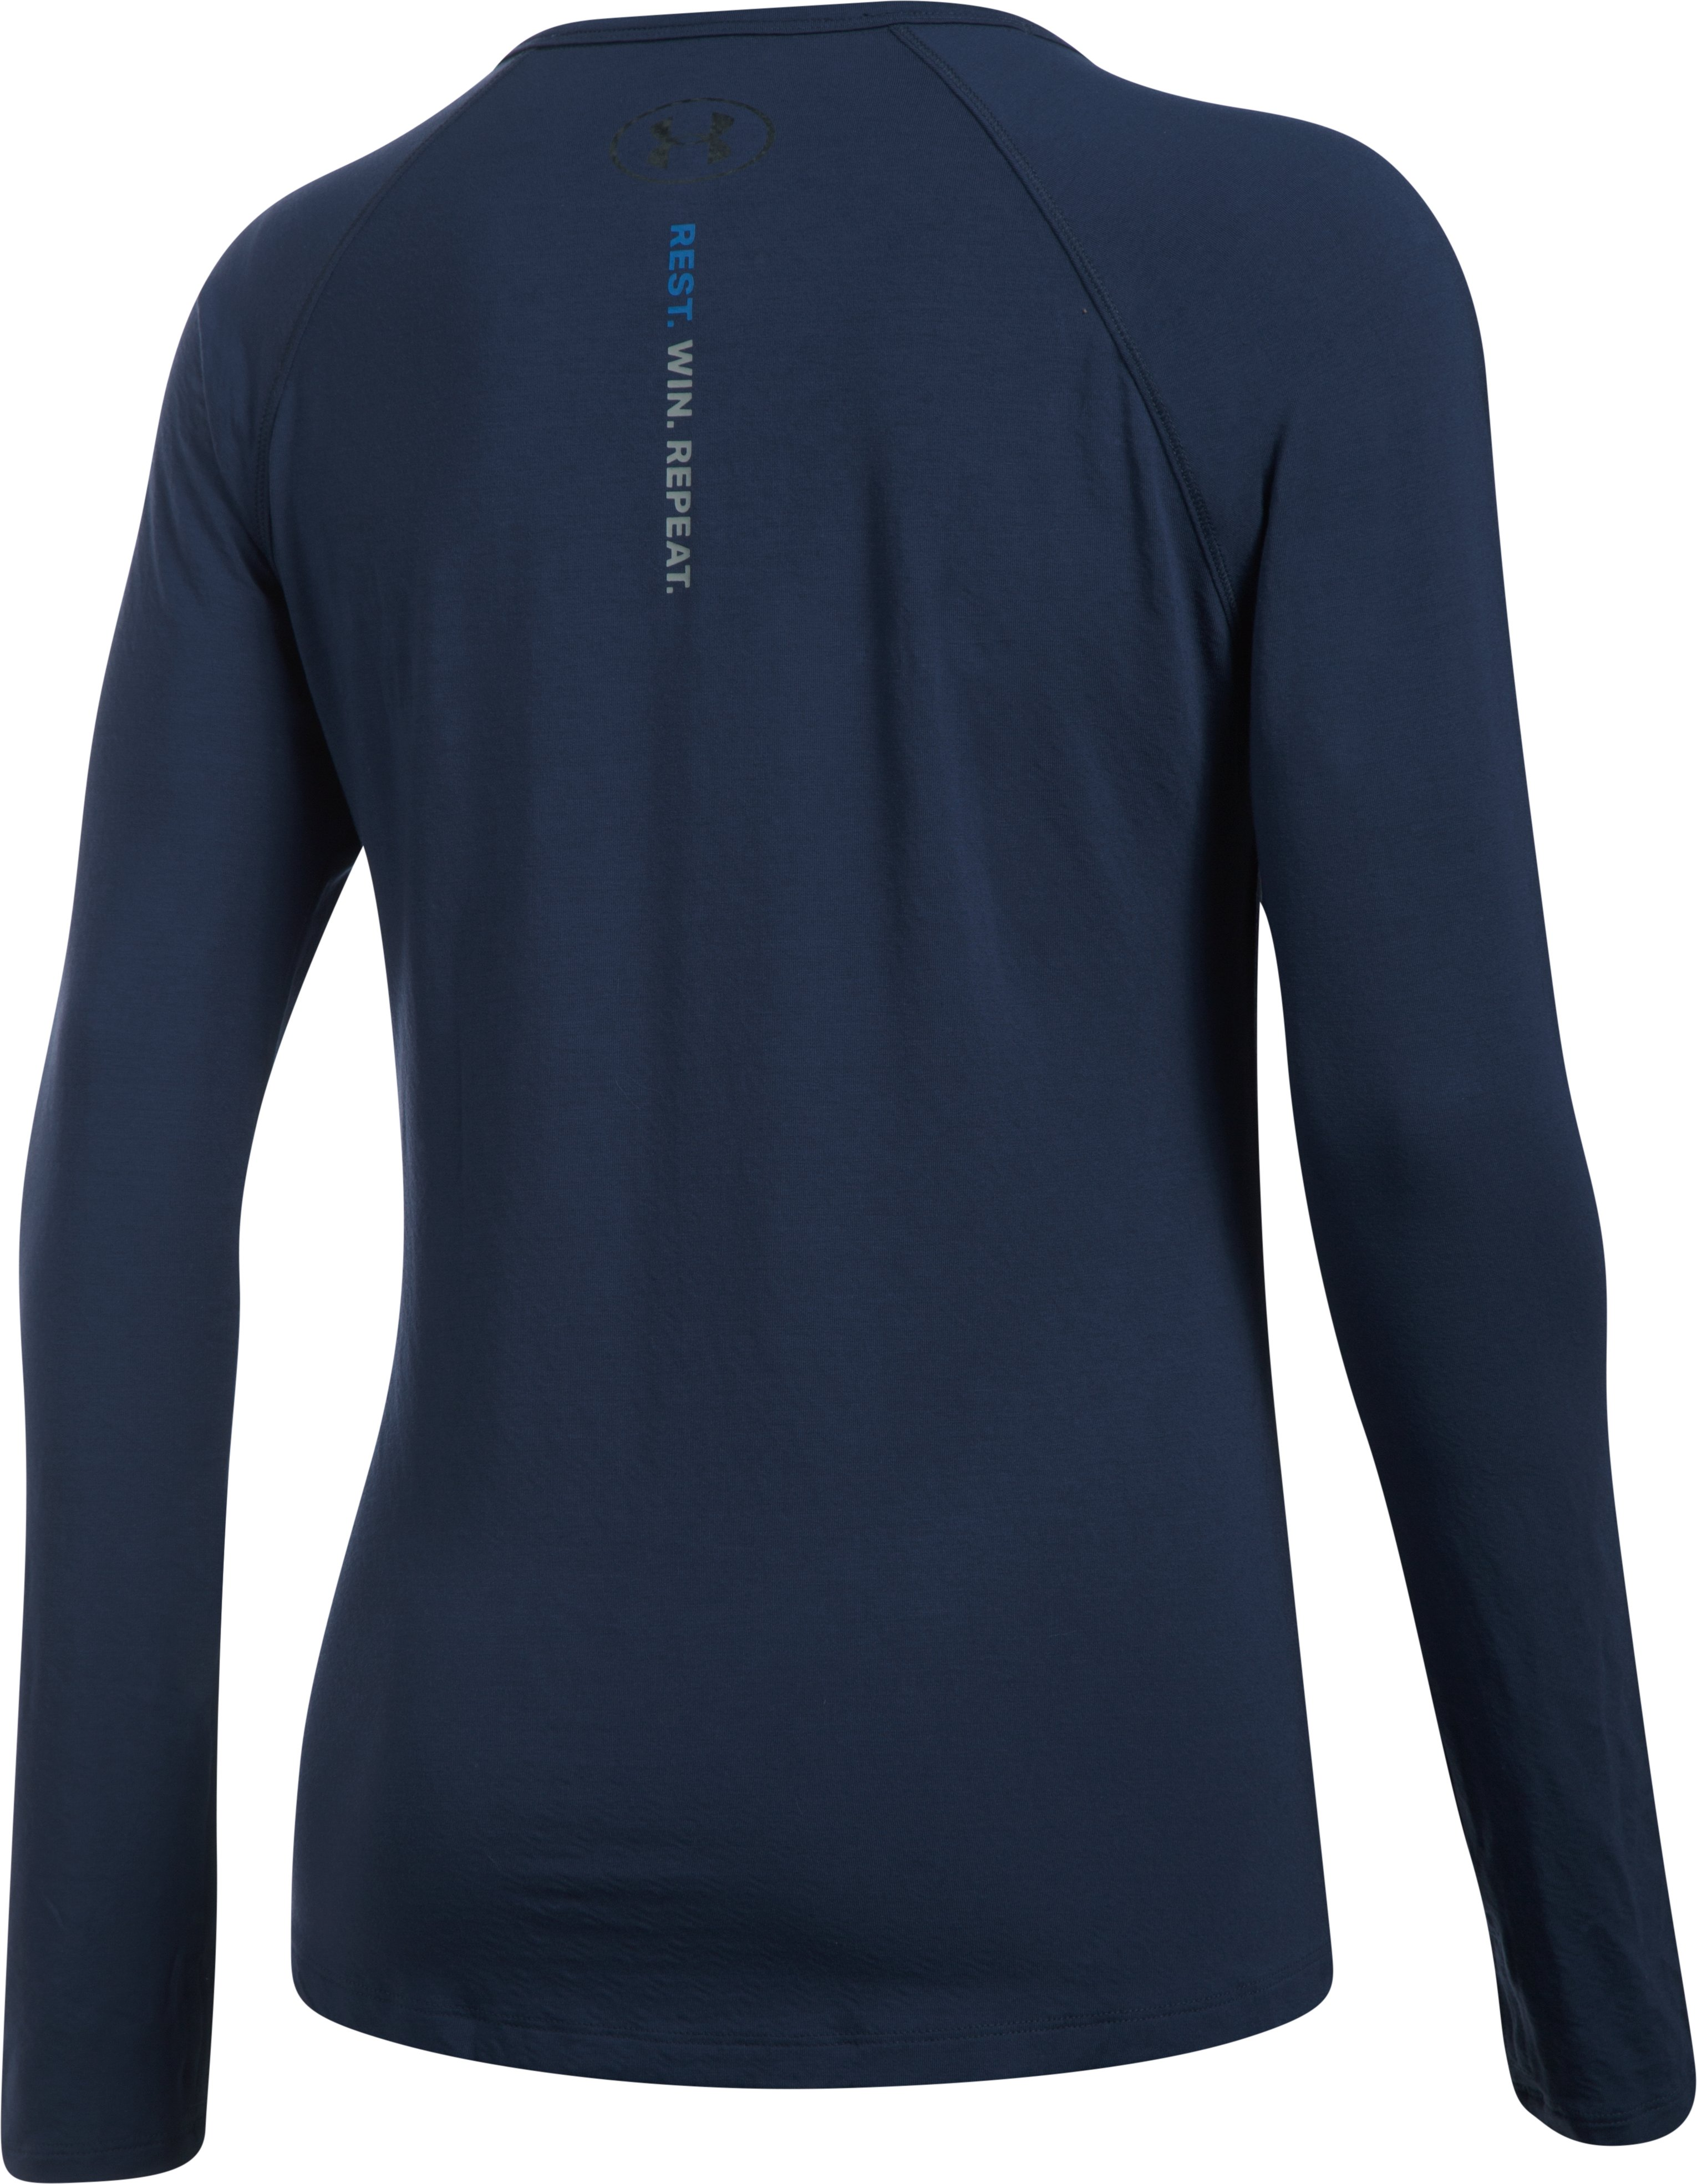 Women's Athlete Recovery Ultra Comfort Sleepwear Henley, Midnight Navy, undefined